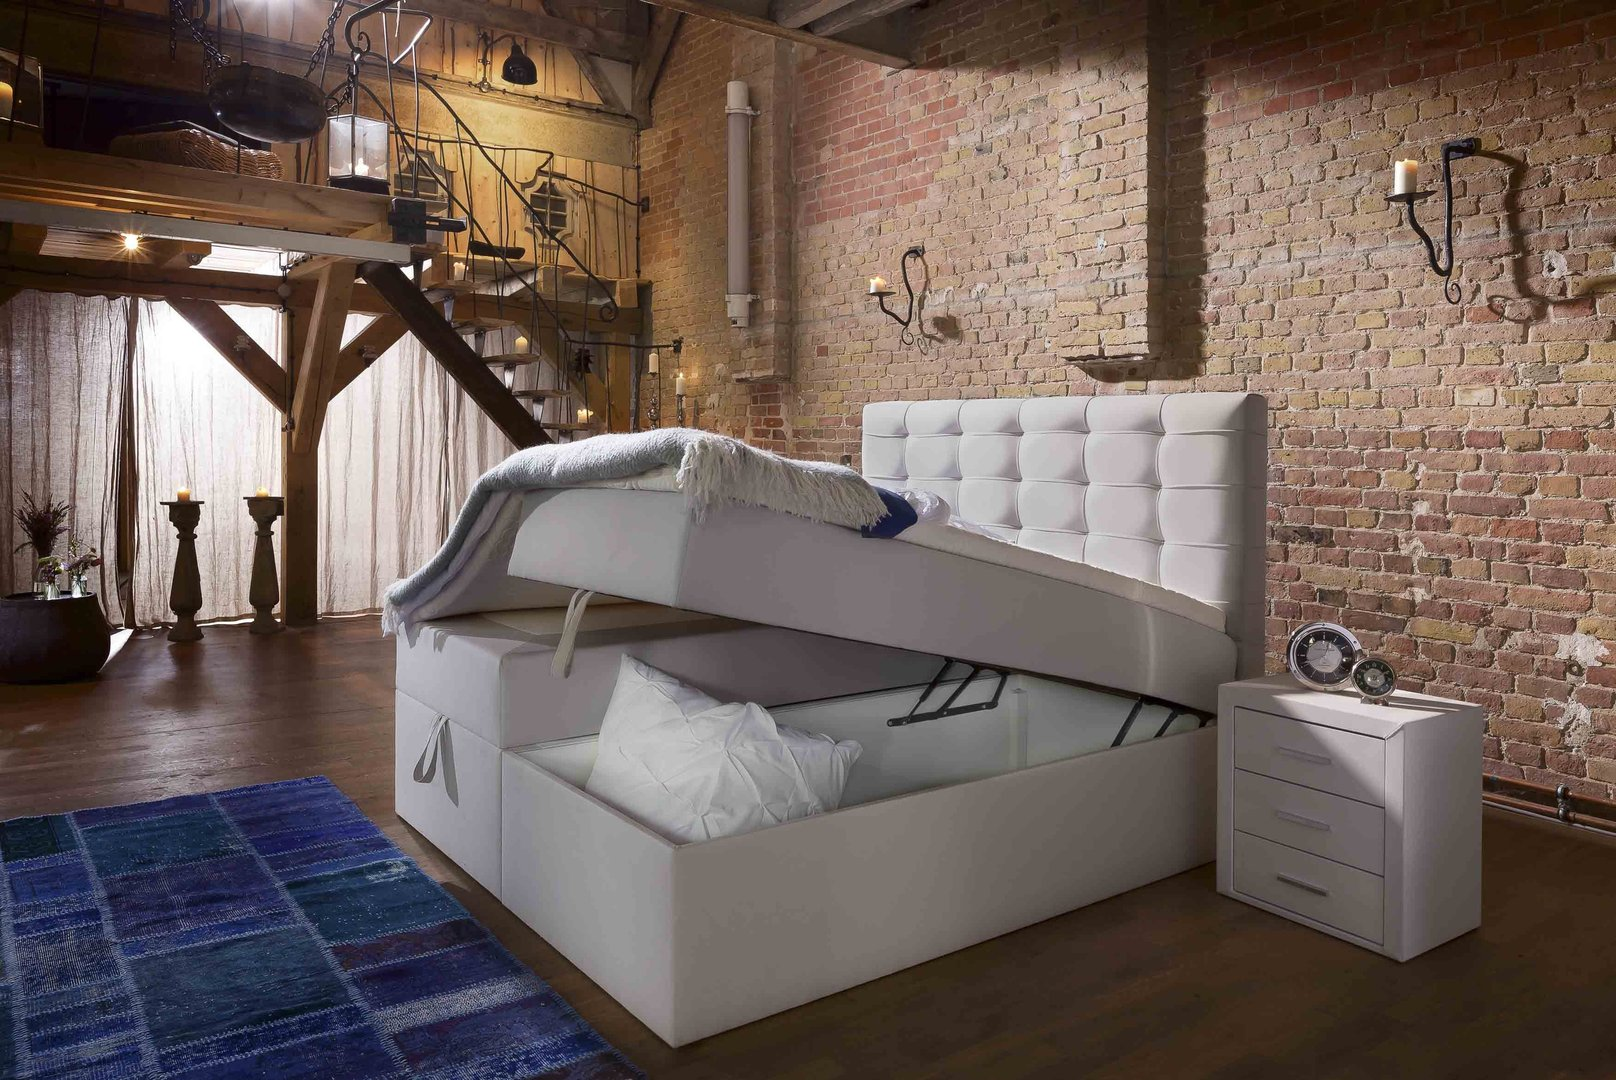 Boxspringbett 140x200 mit bettkasten  Boxspringbett Milano Box Plus mit Bettkasten-90x200,140x200 ...